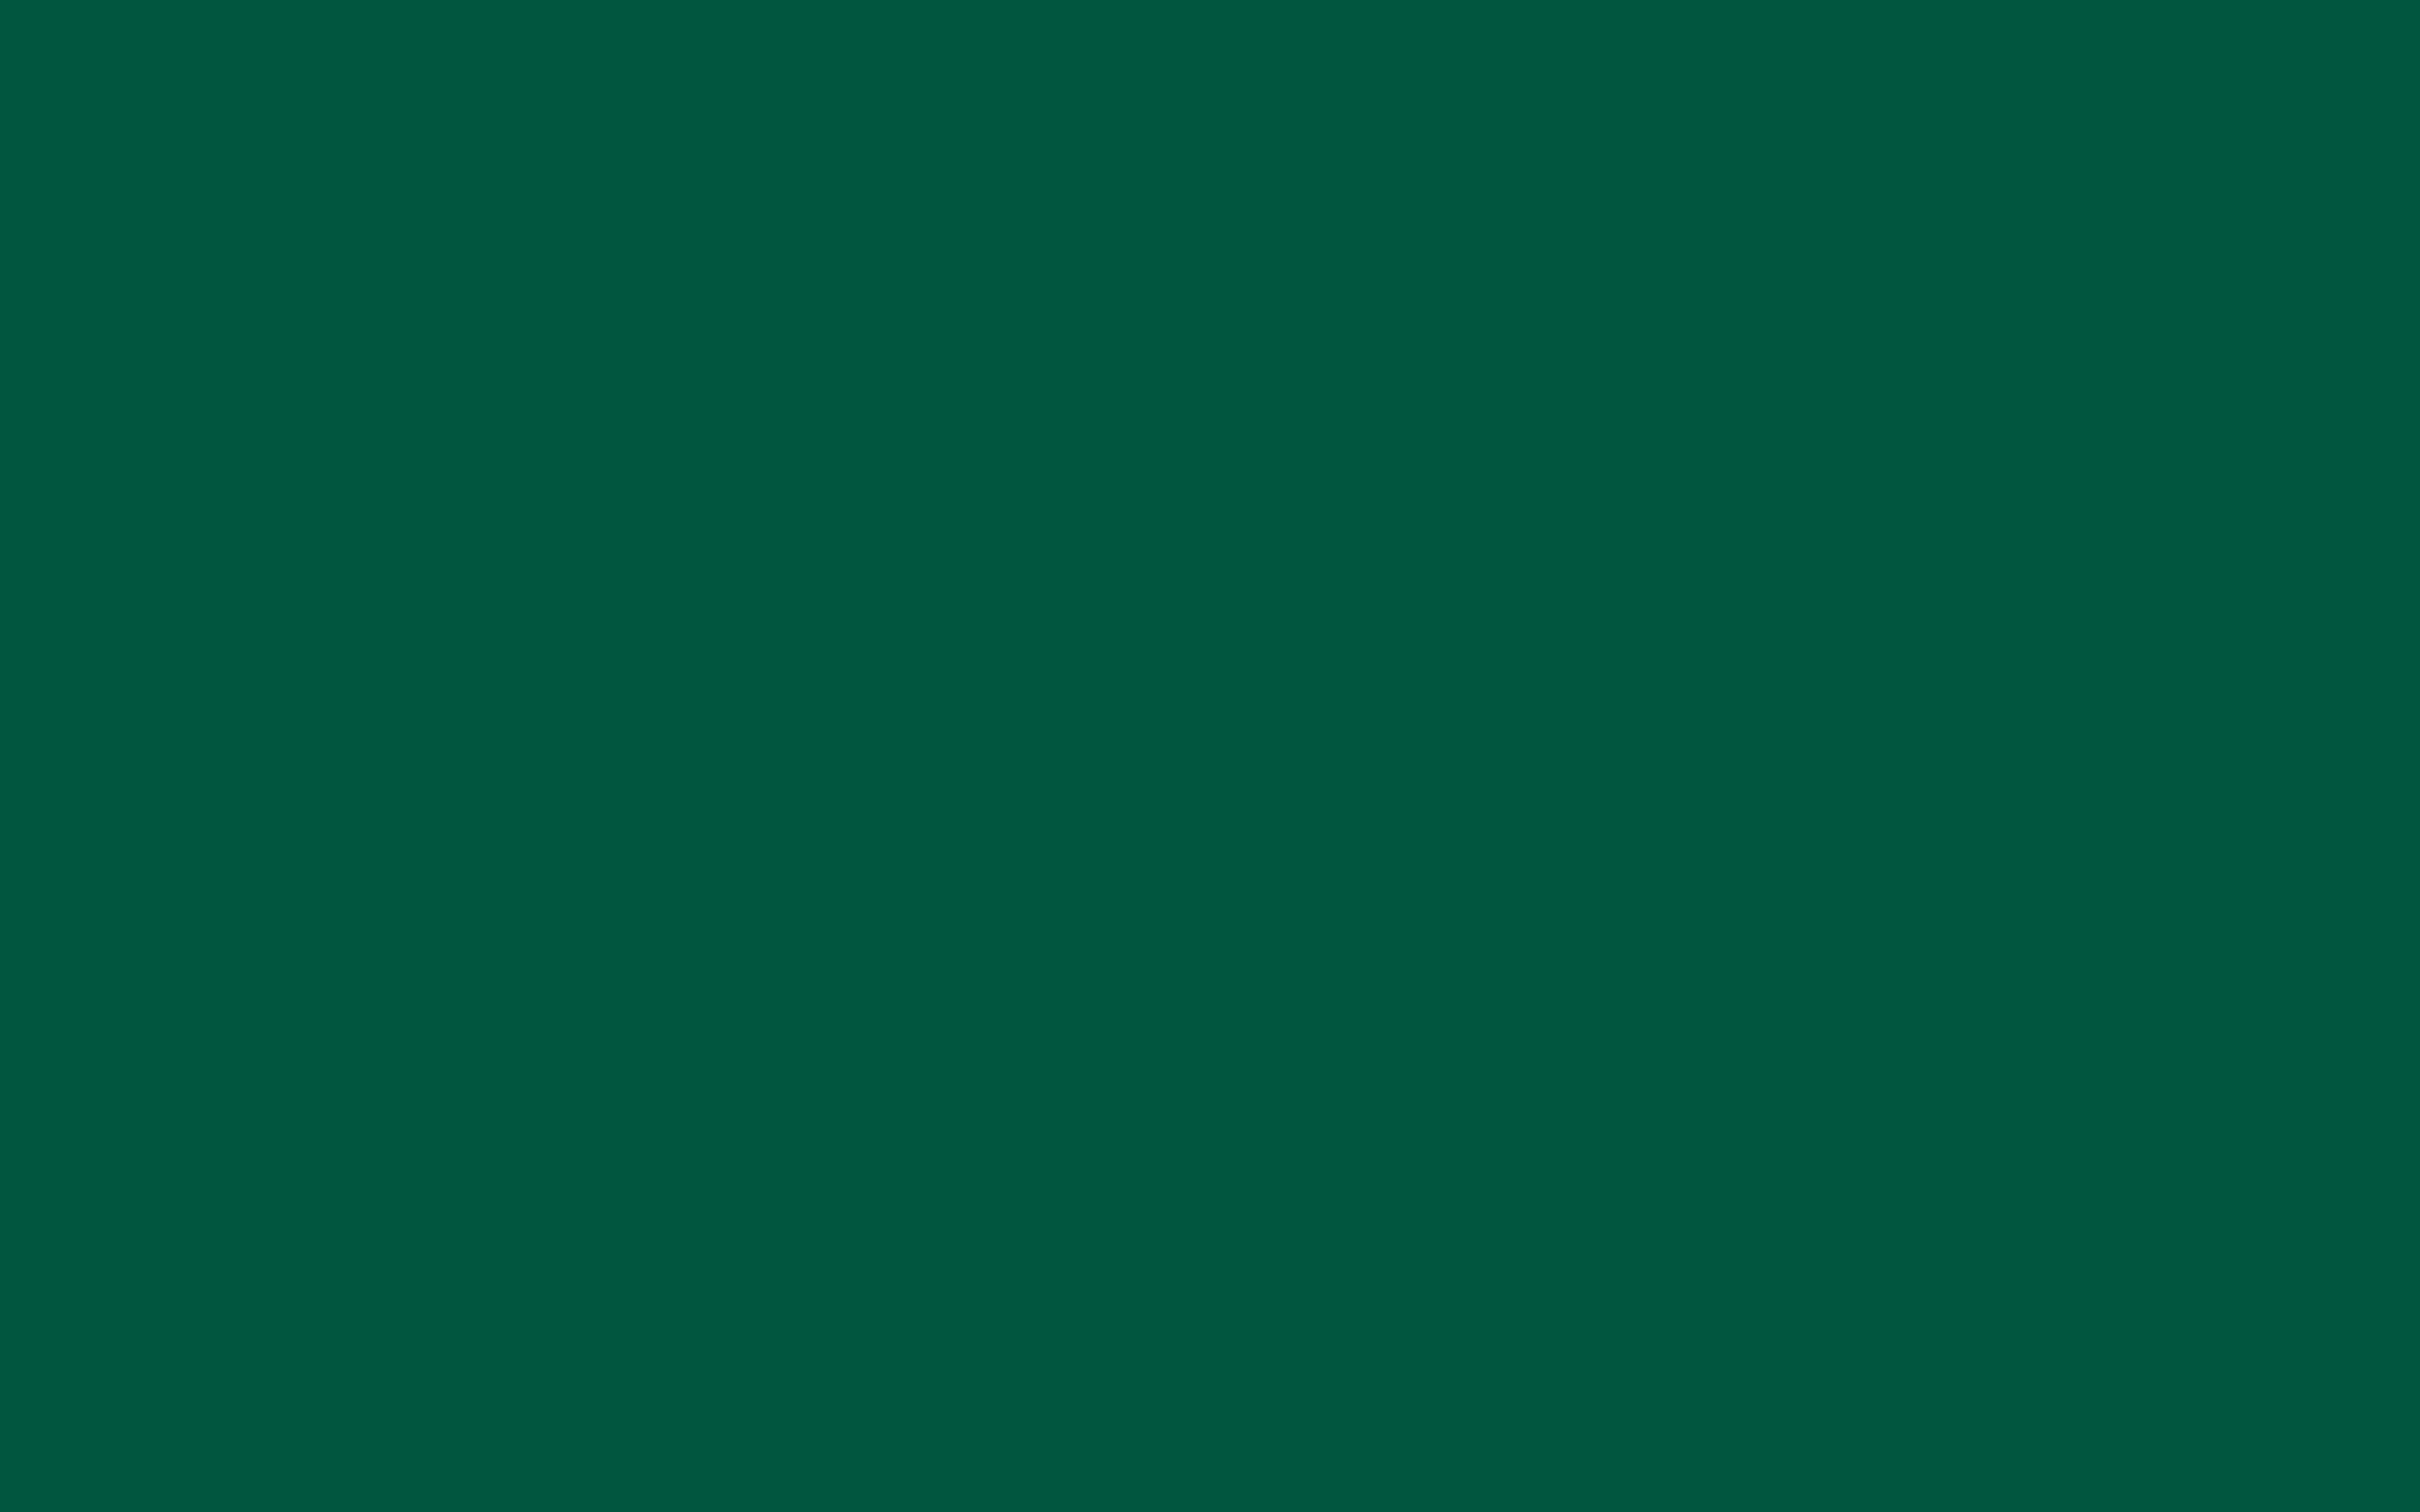 2880x1800 Sacramento State Green Solid Color Background